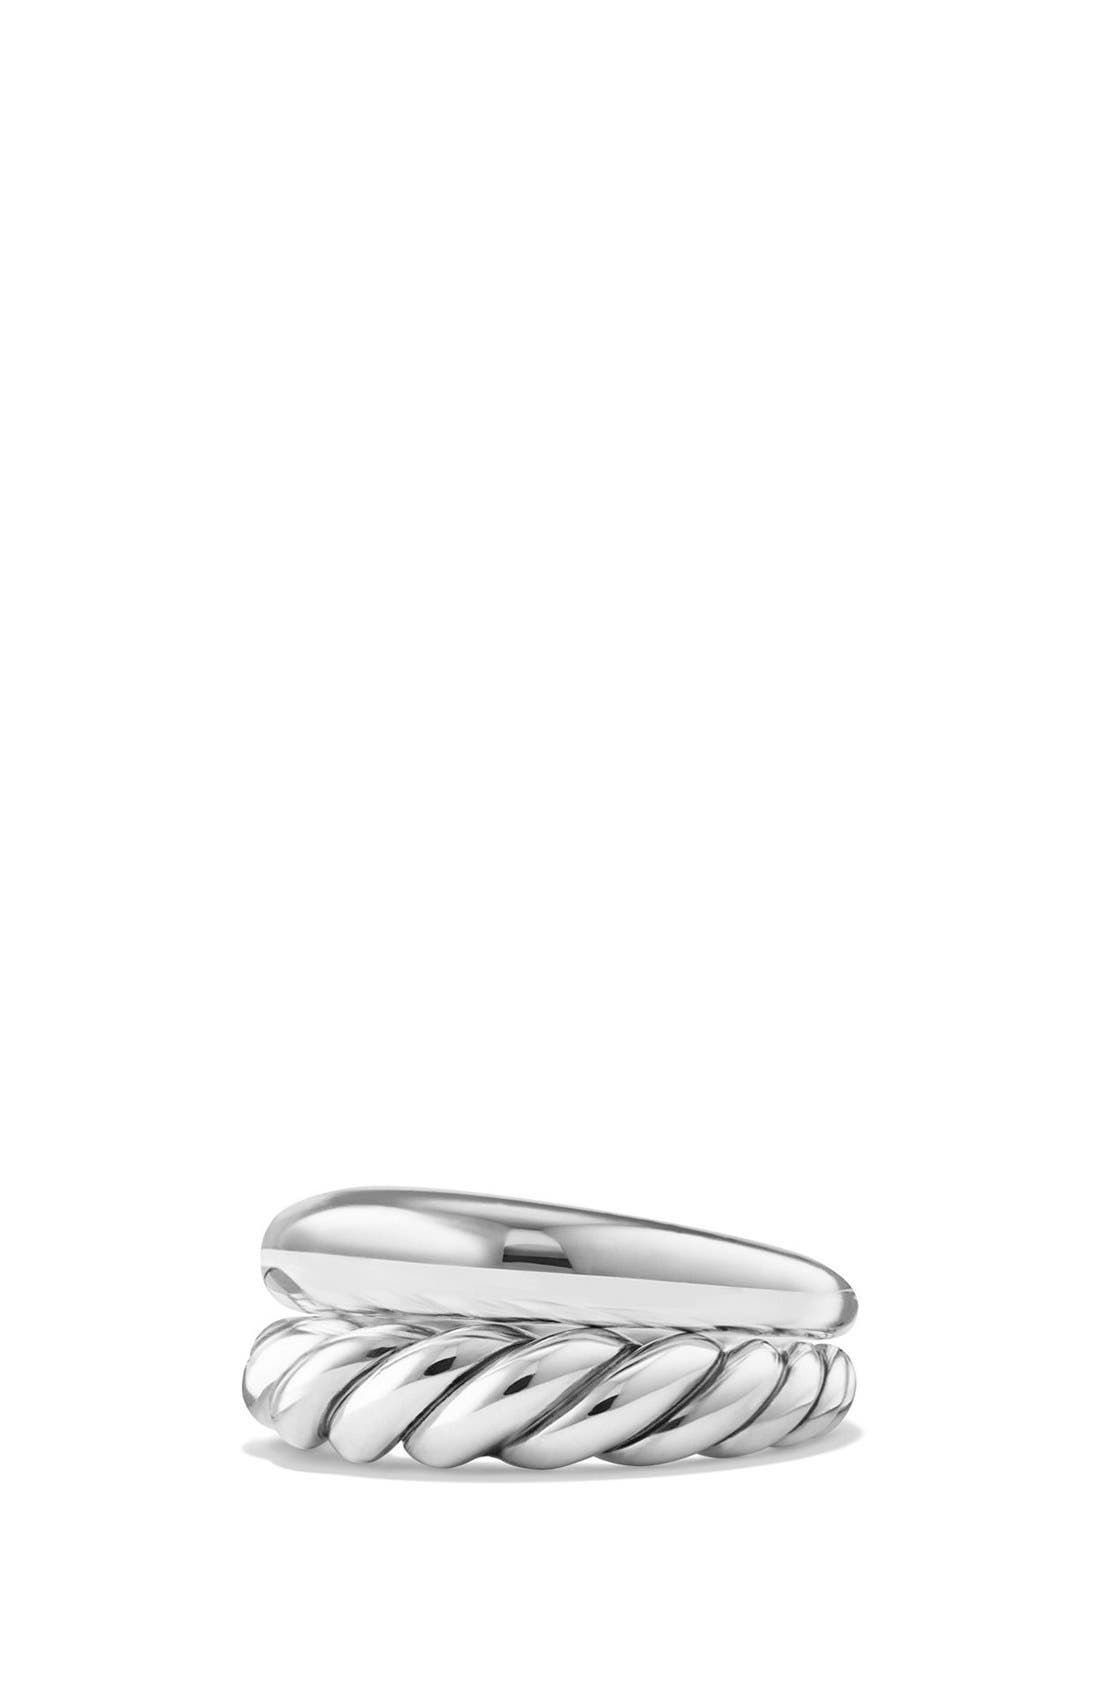 'Pure Form' Sterling Silver Stacking Rings,                             Main thumbnail 1, color,                             SILVER